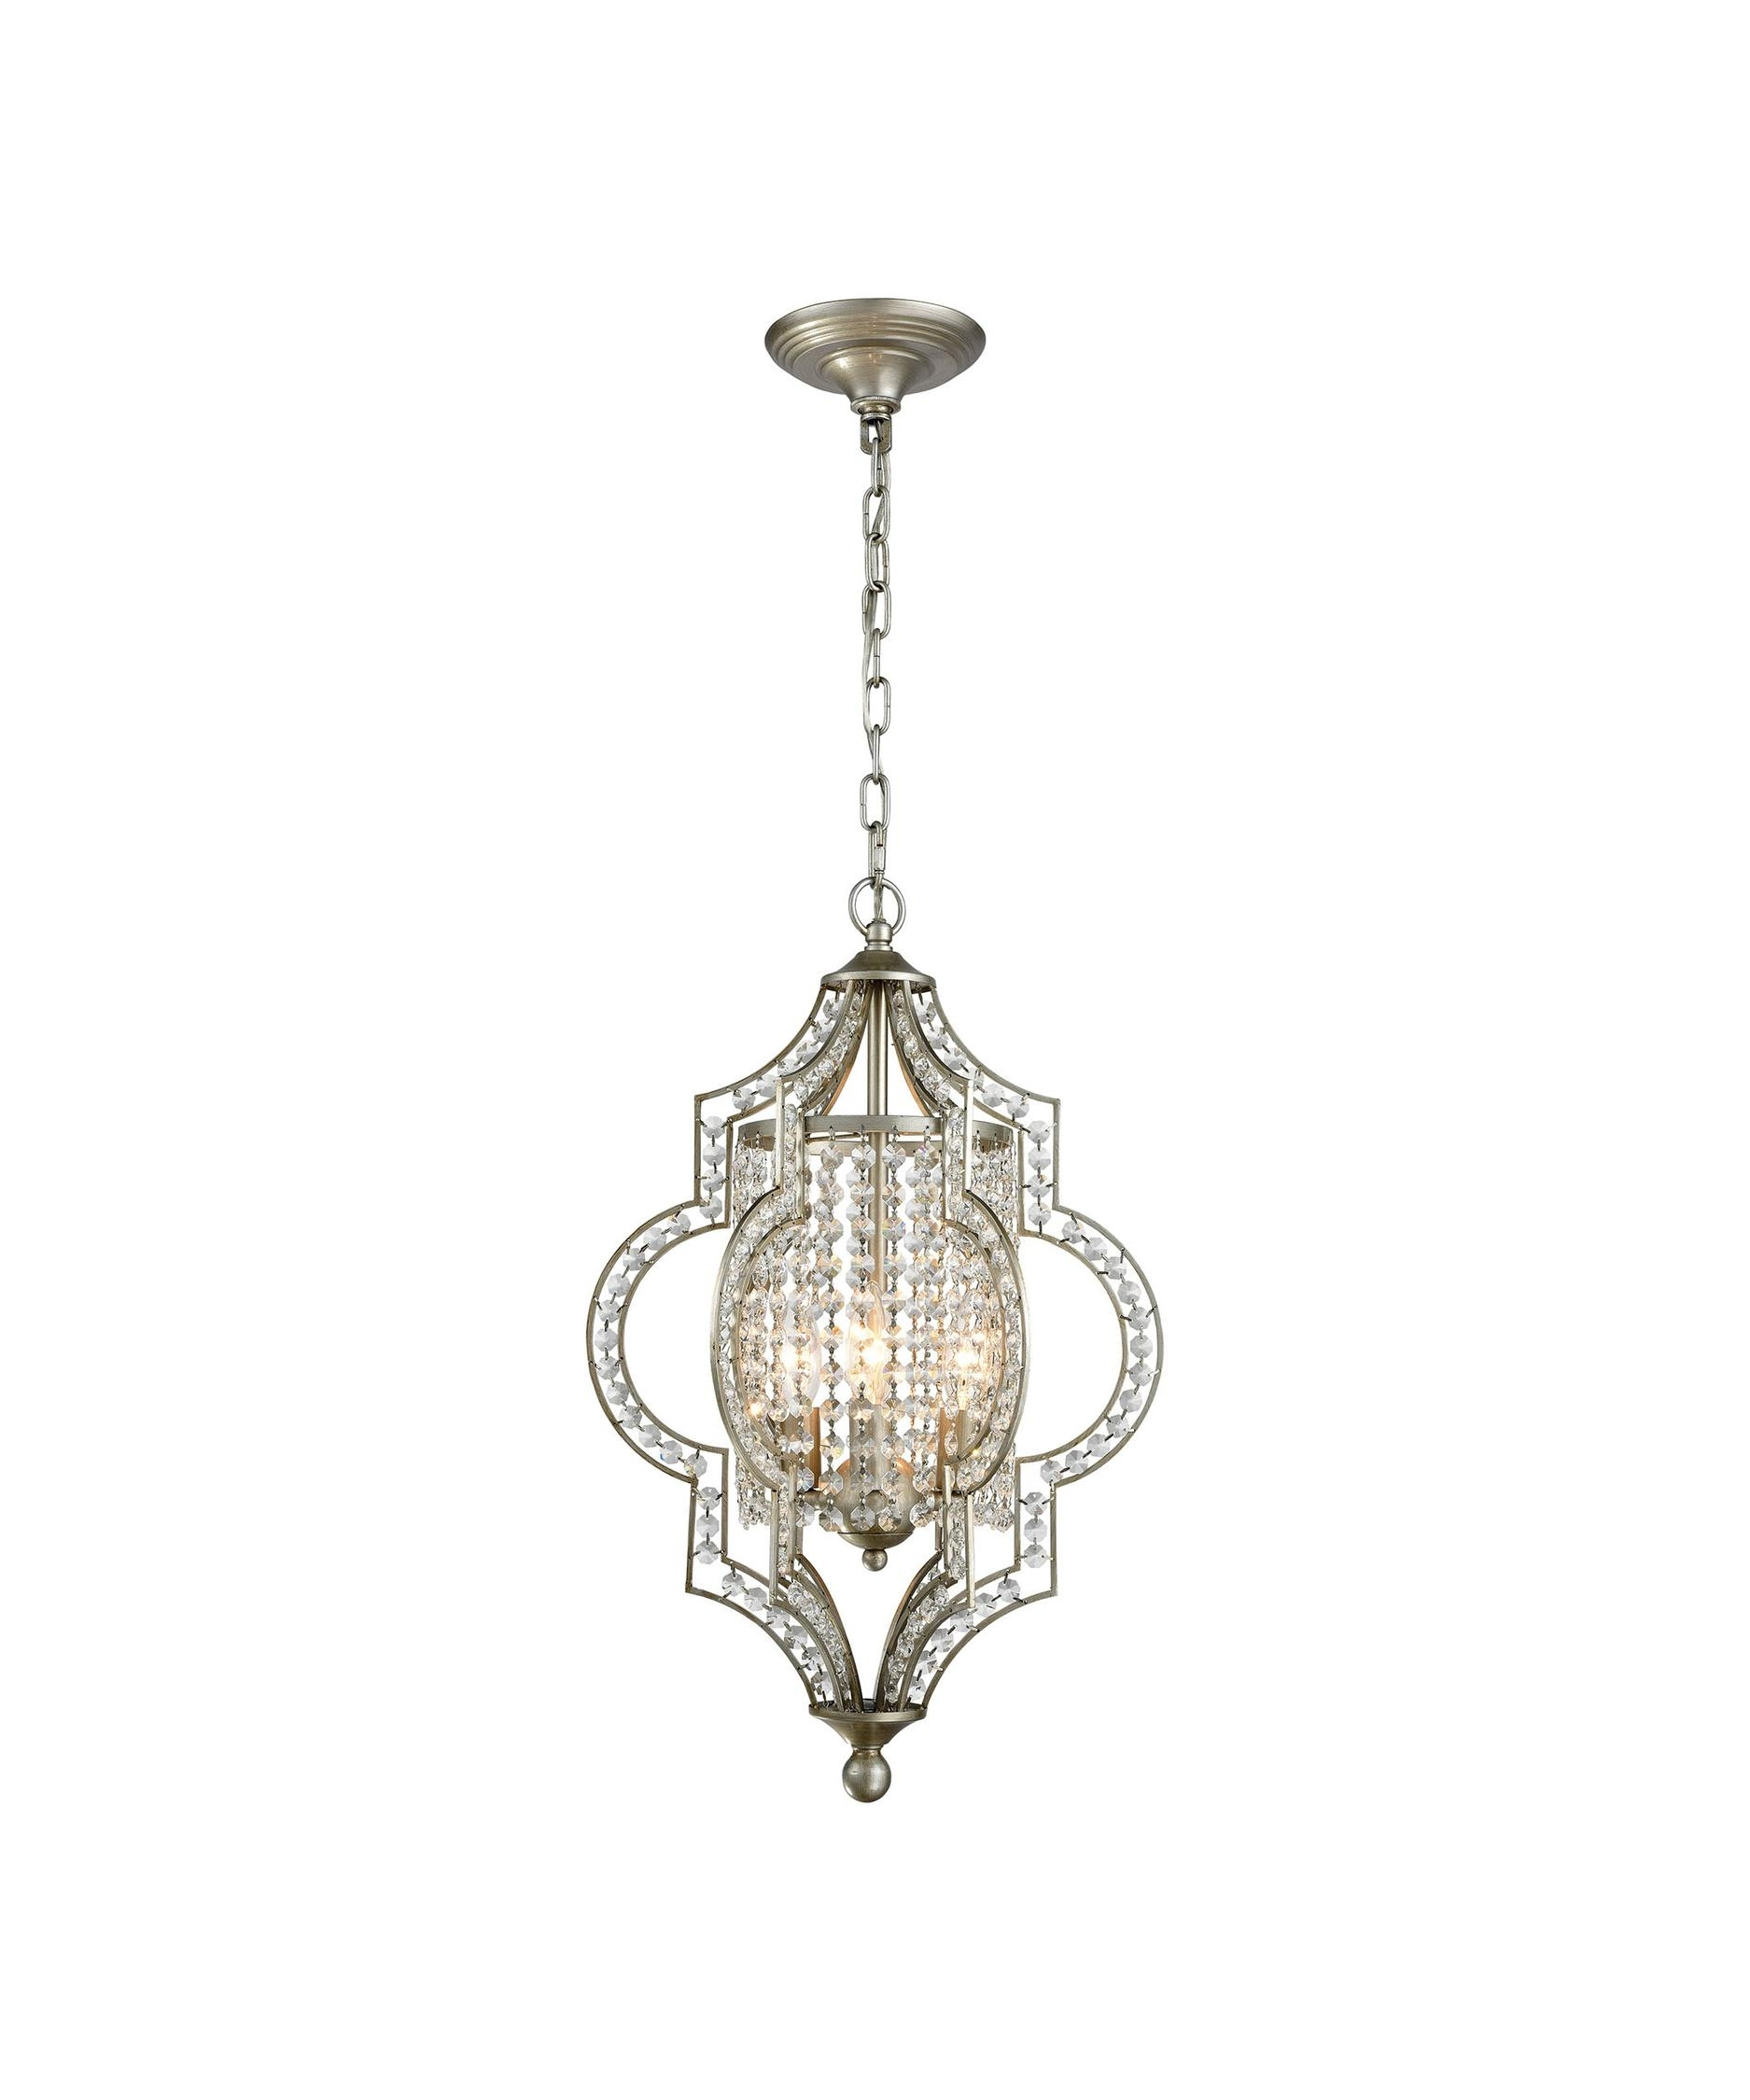 Trendy Elk Lighting 16203 Gabrielle 14 Inch Wide 3 Light Mini Pendant For 3 Light Crystal Chandeliers (View 20 of 20)